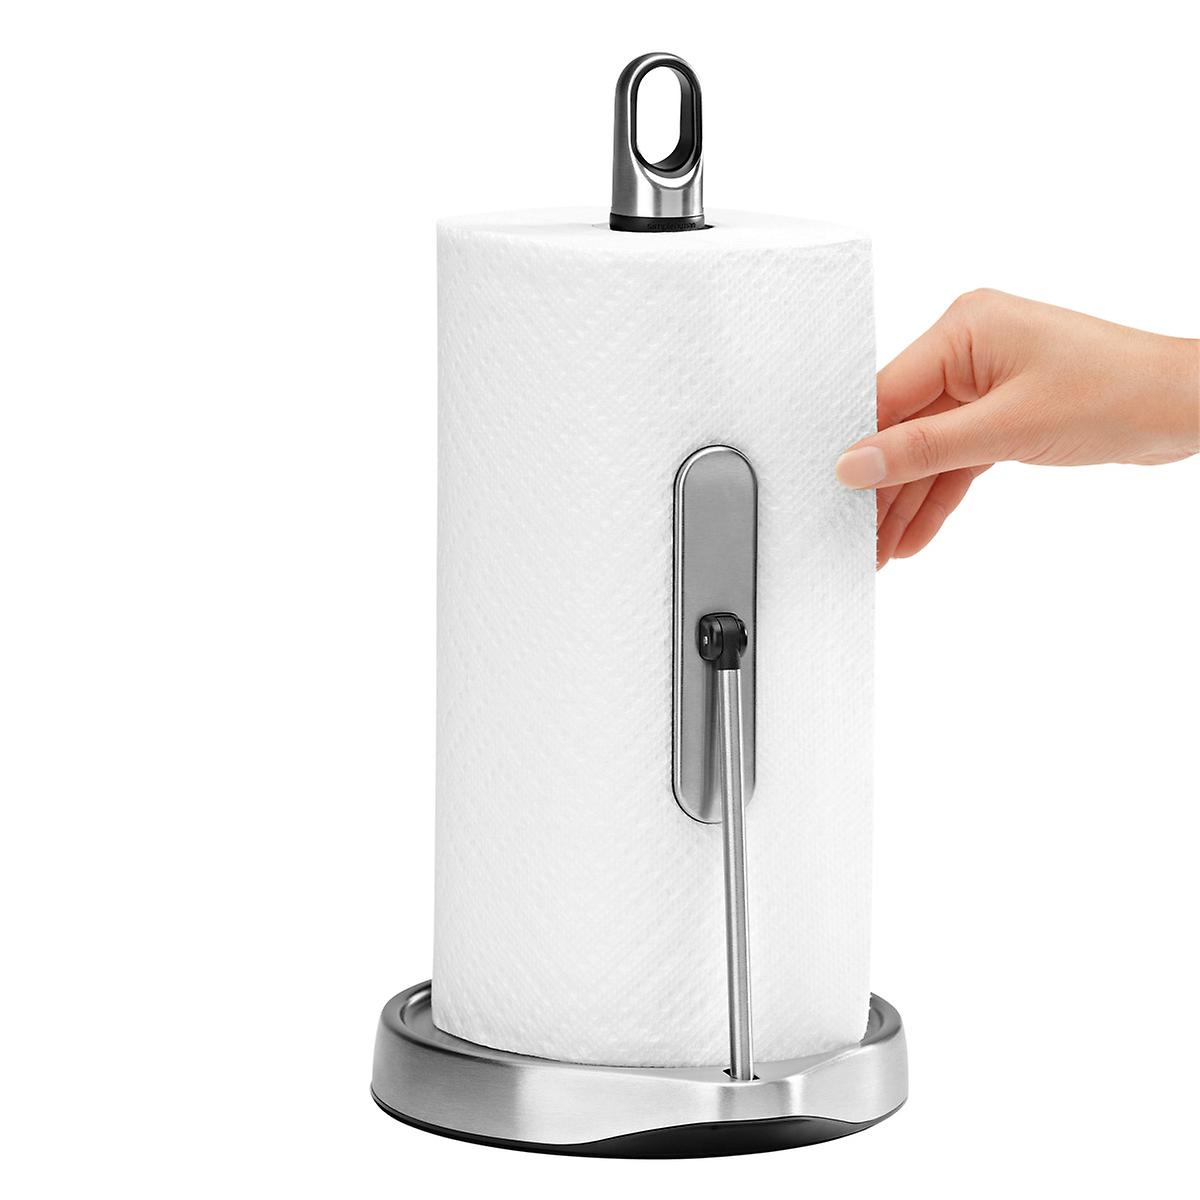 simplehuman Stainless Steel Tension Arm Paper Towel Holder